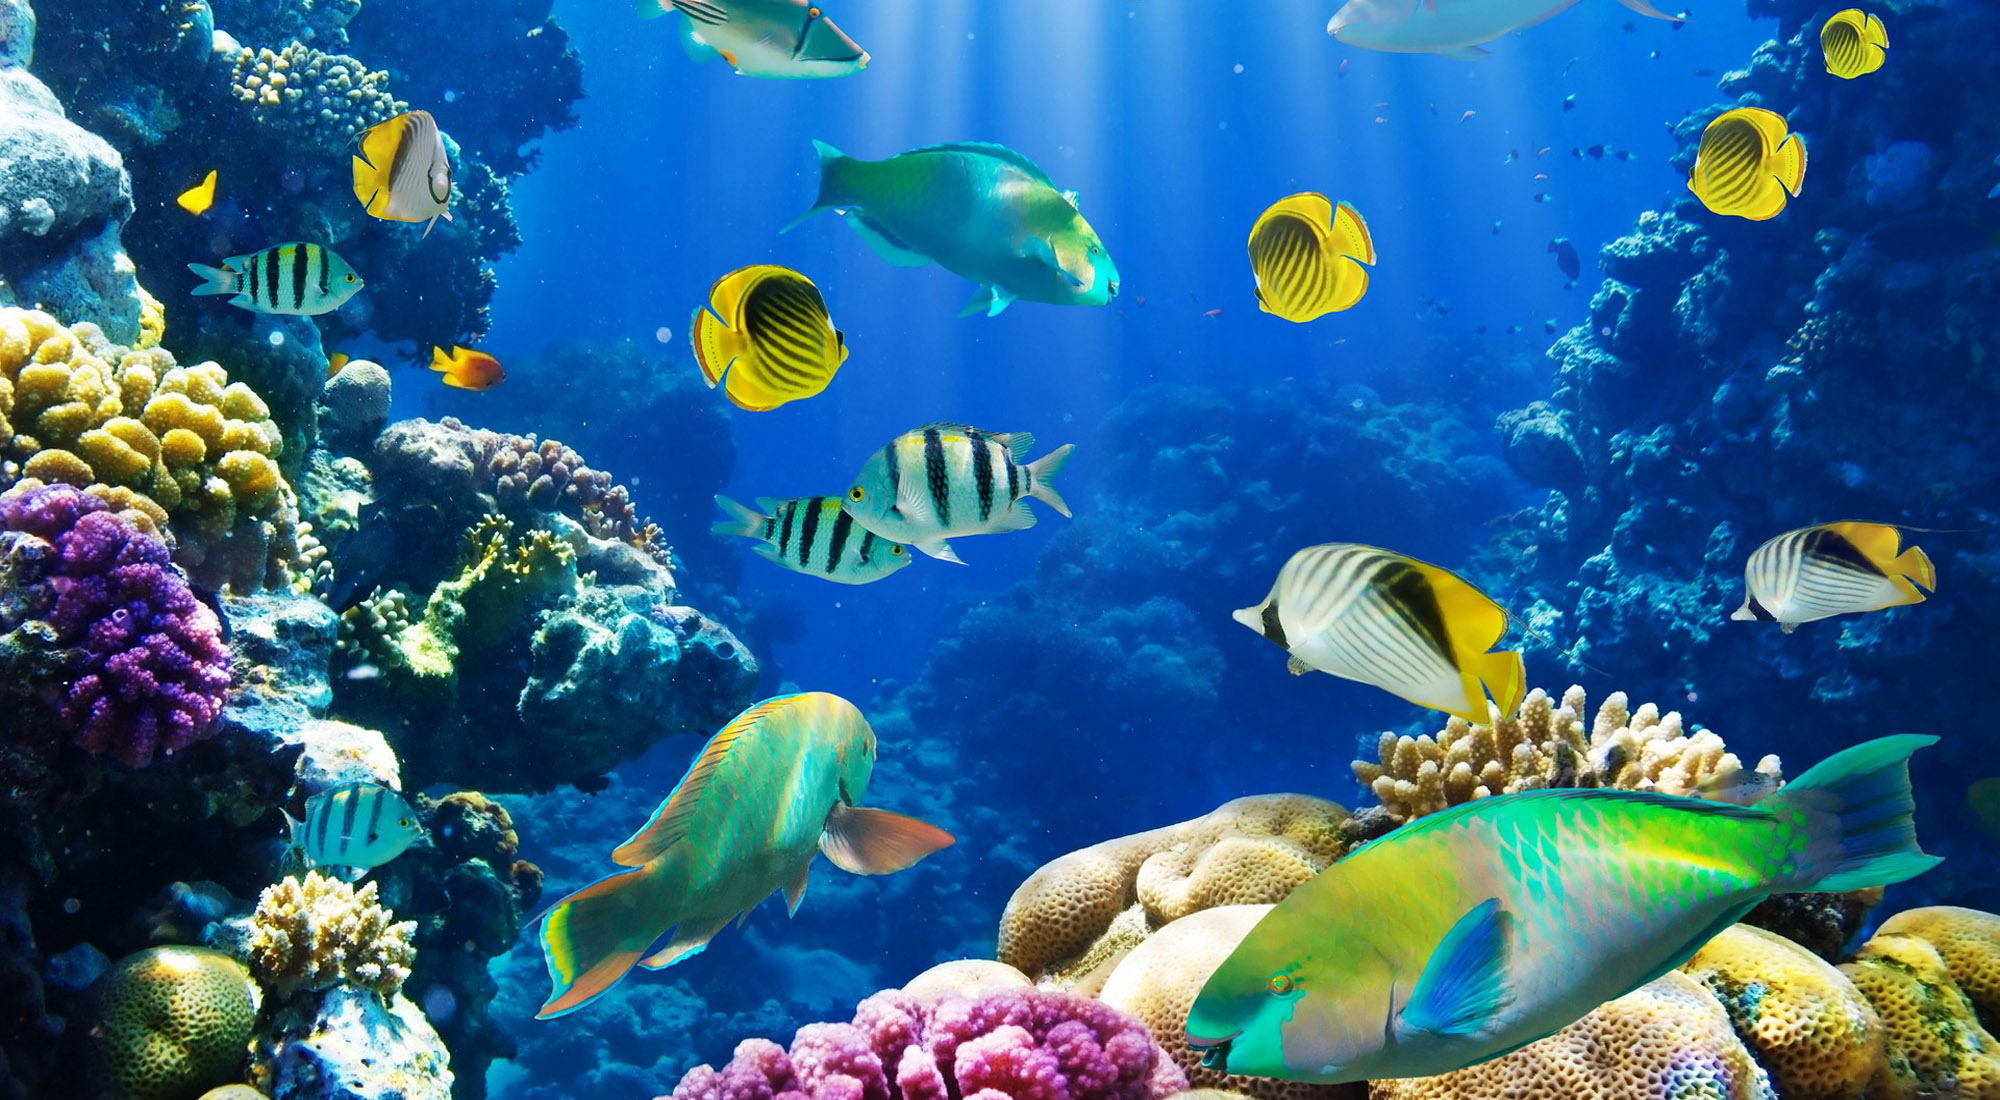 Fish HD Wallpaper Download